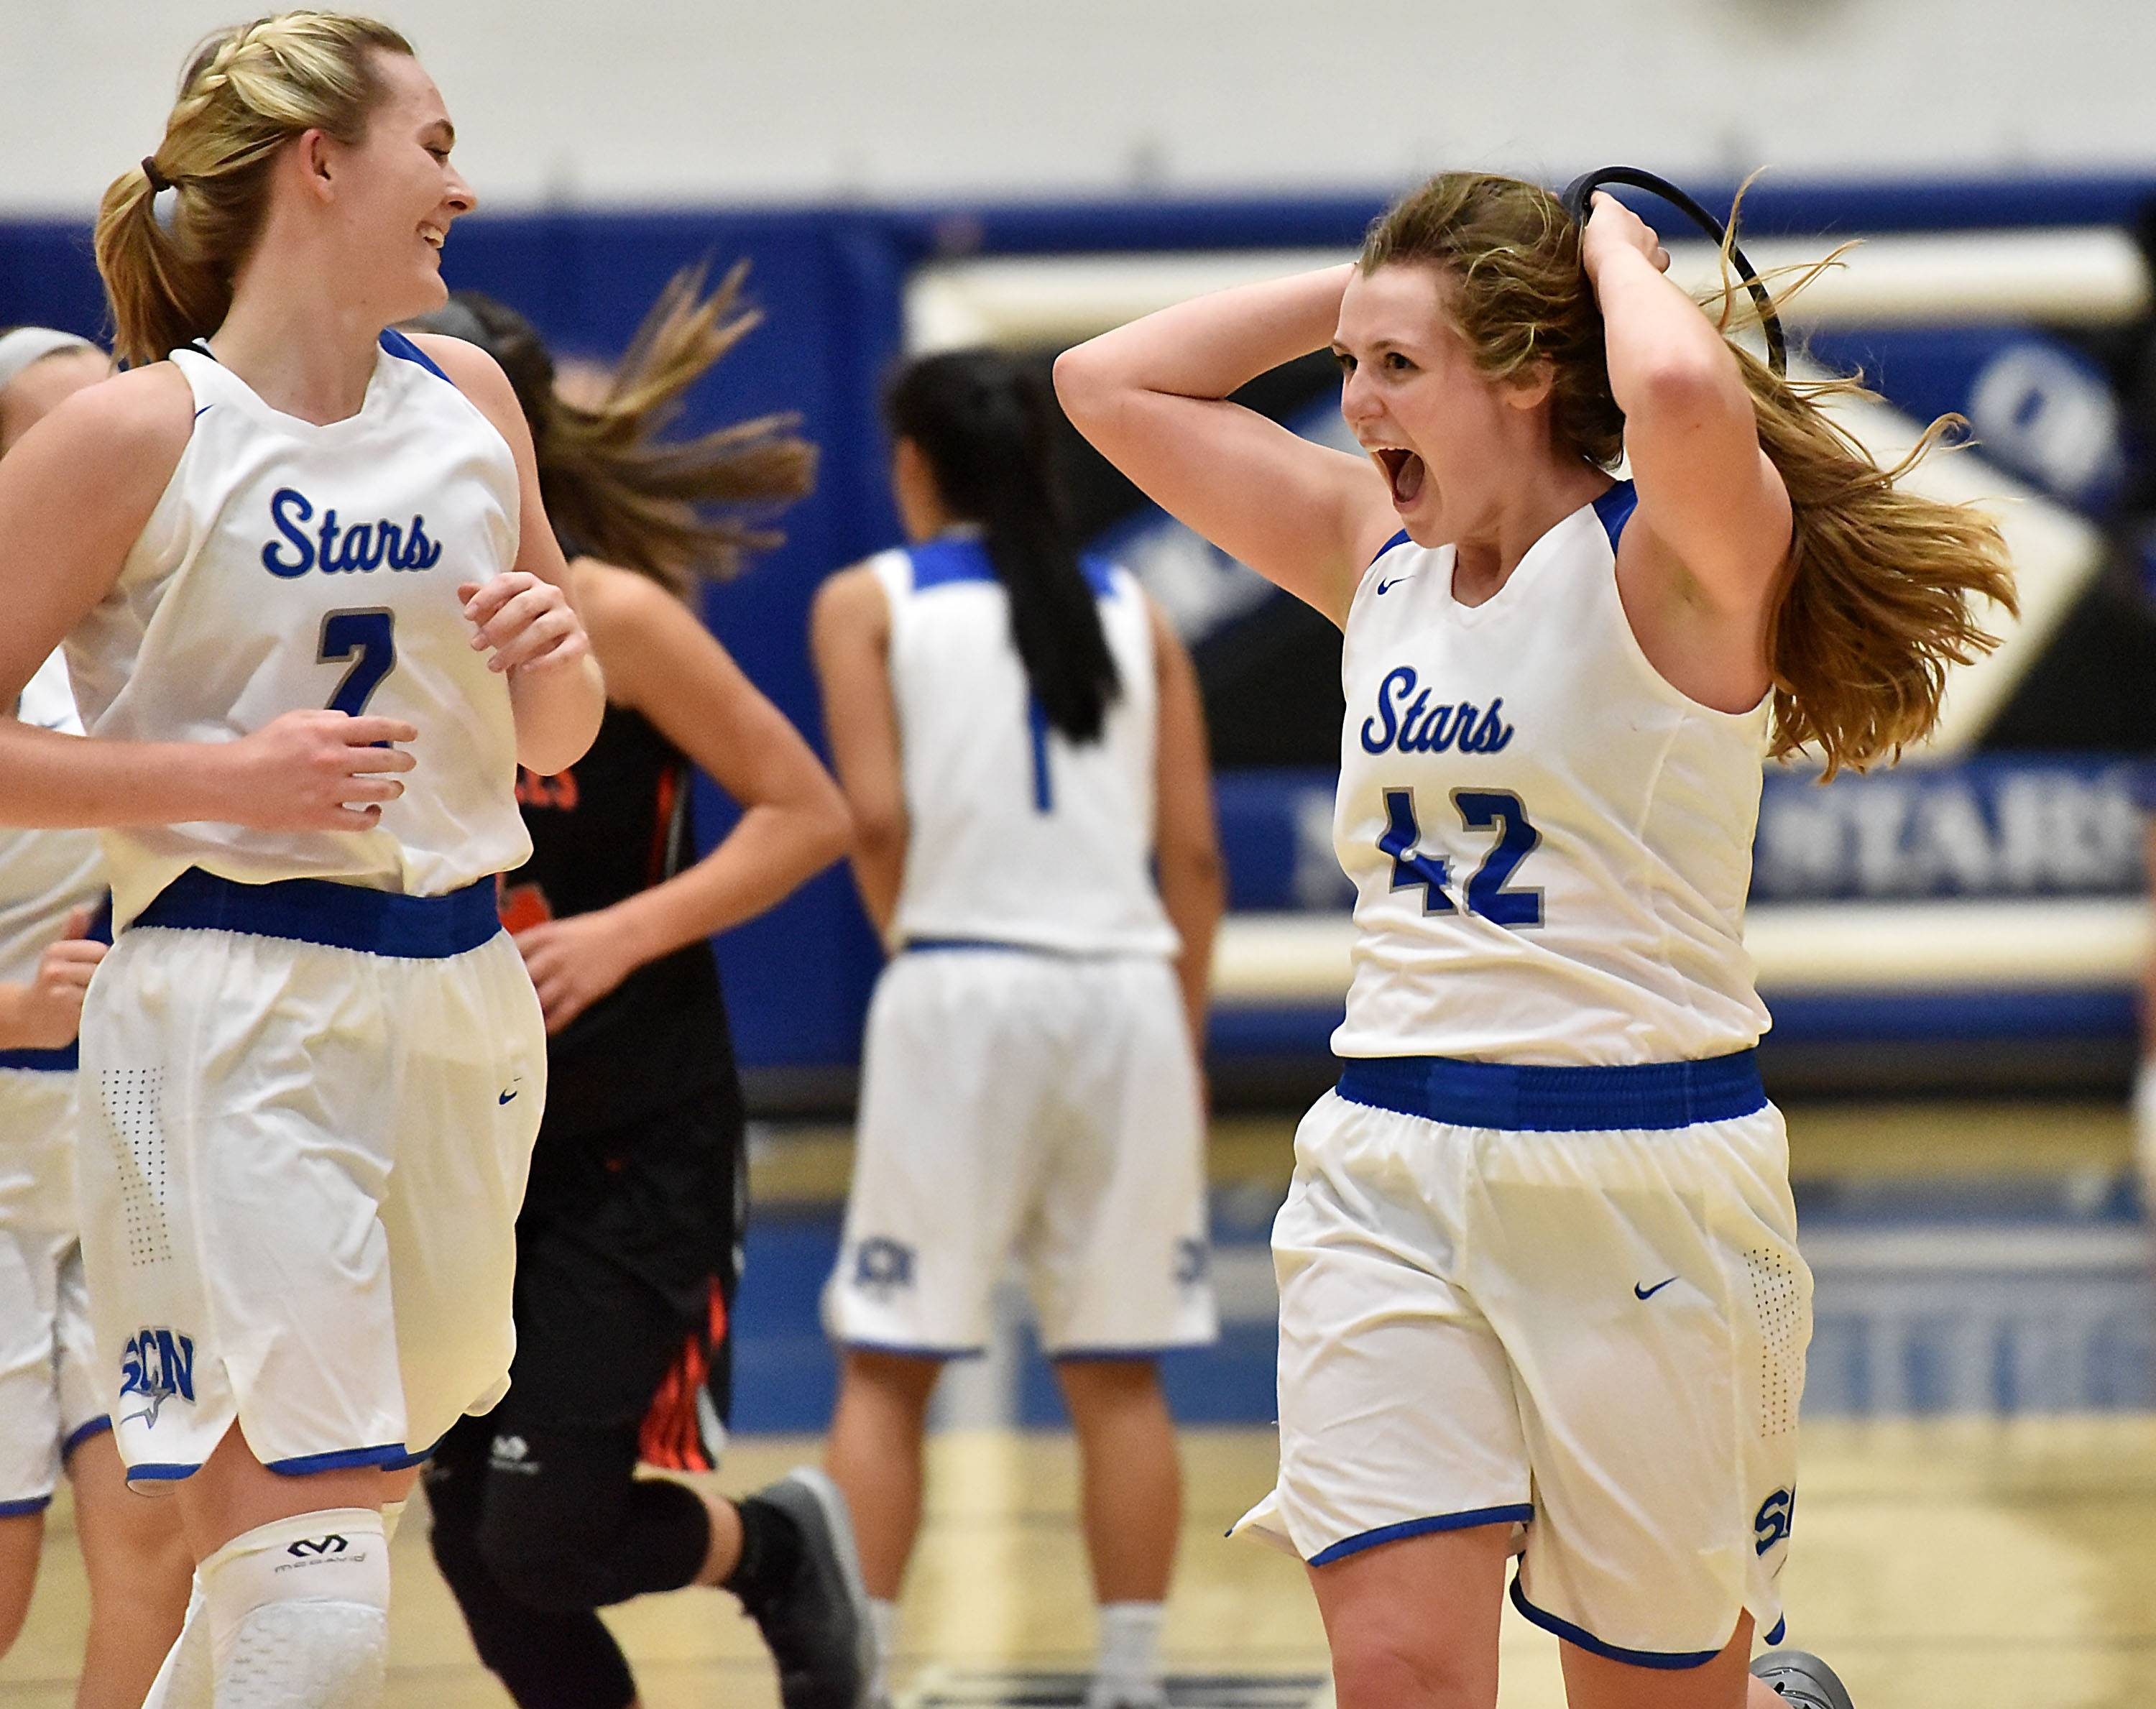 St. Charles North's Anna Tate, right, and Anna Davern celebrate their comeback win over St. Charles East Friday.